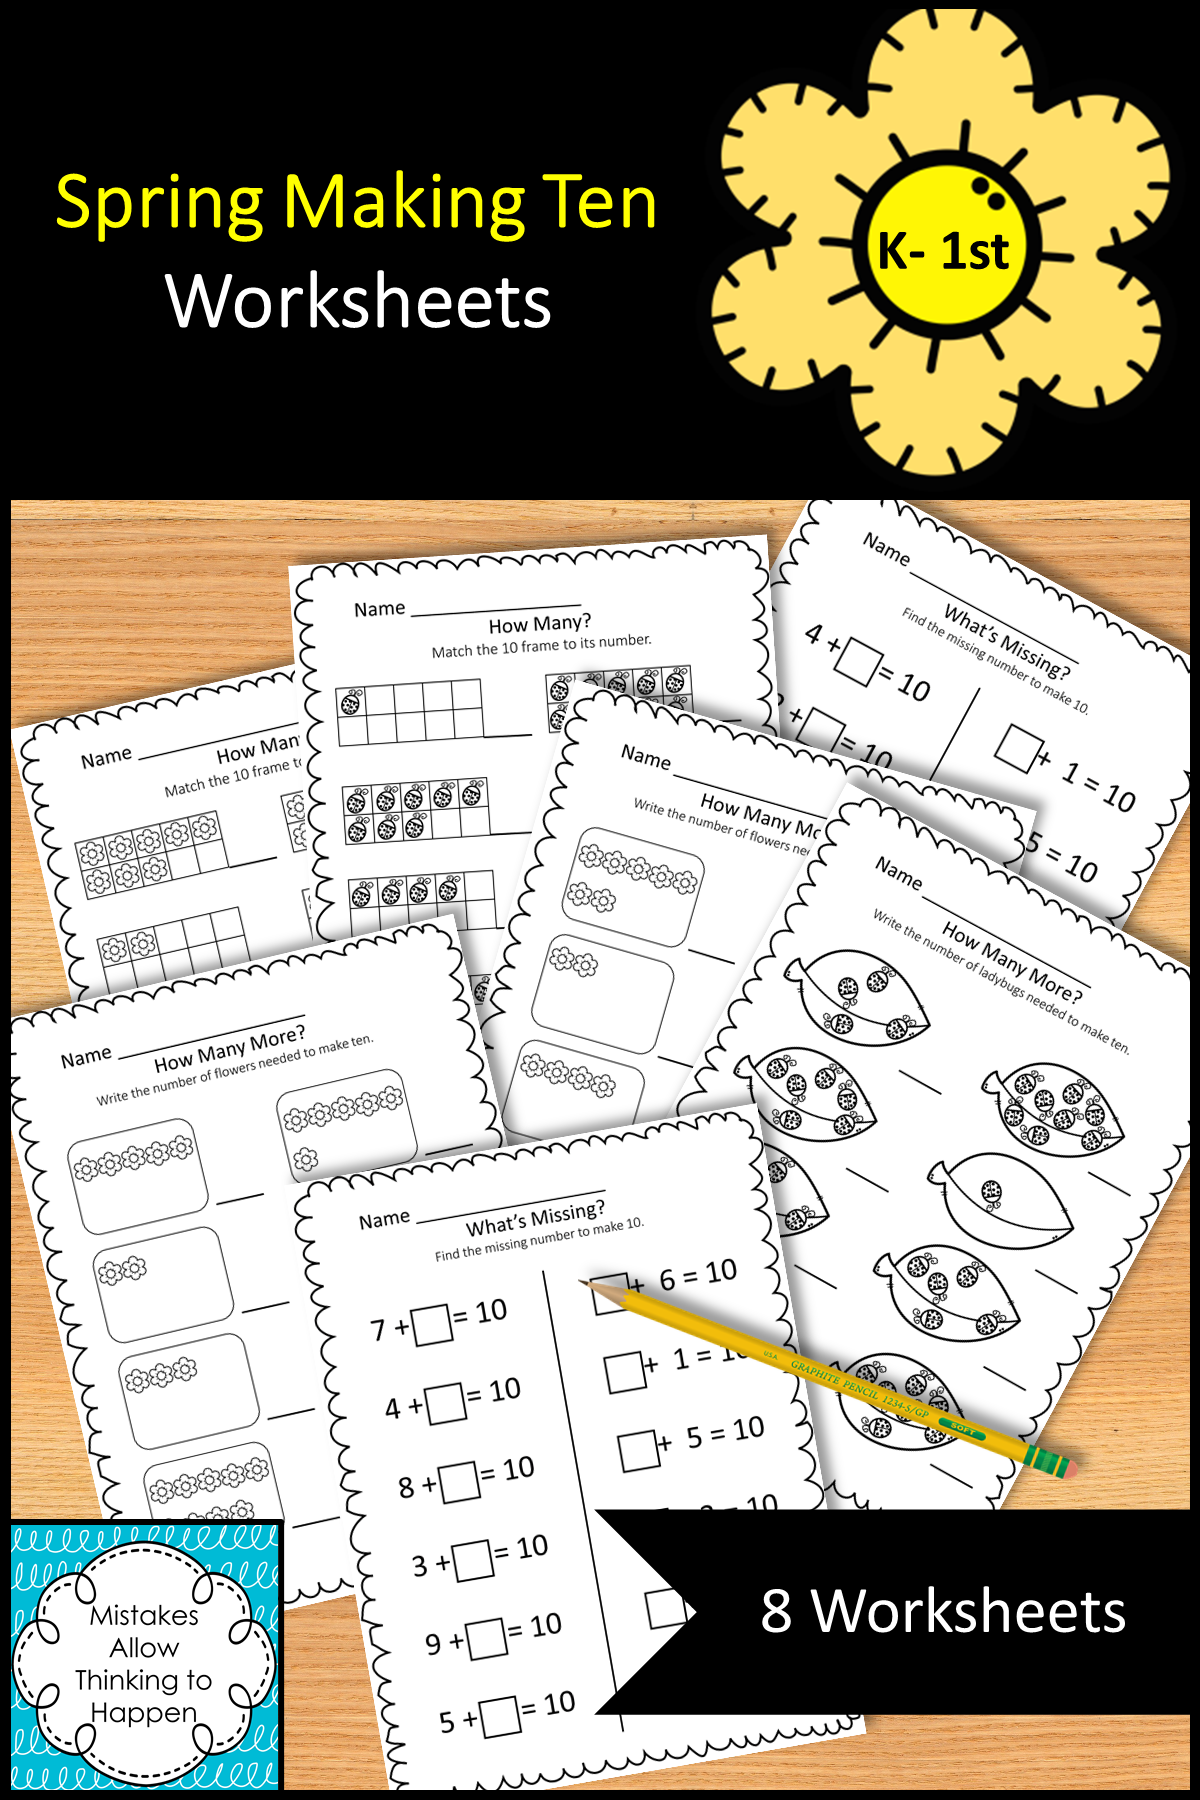 Spring Making Ten Worksheets In